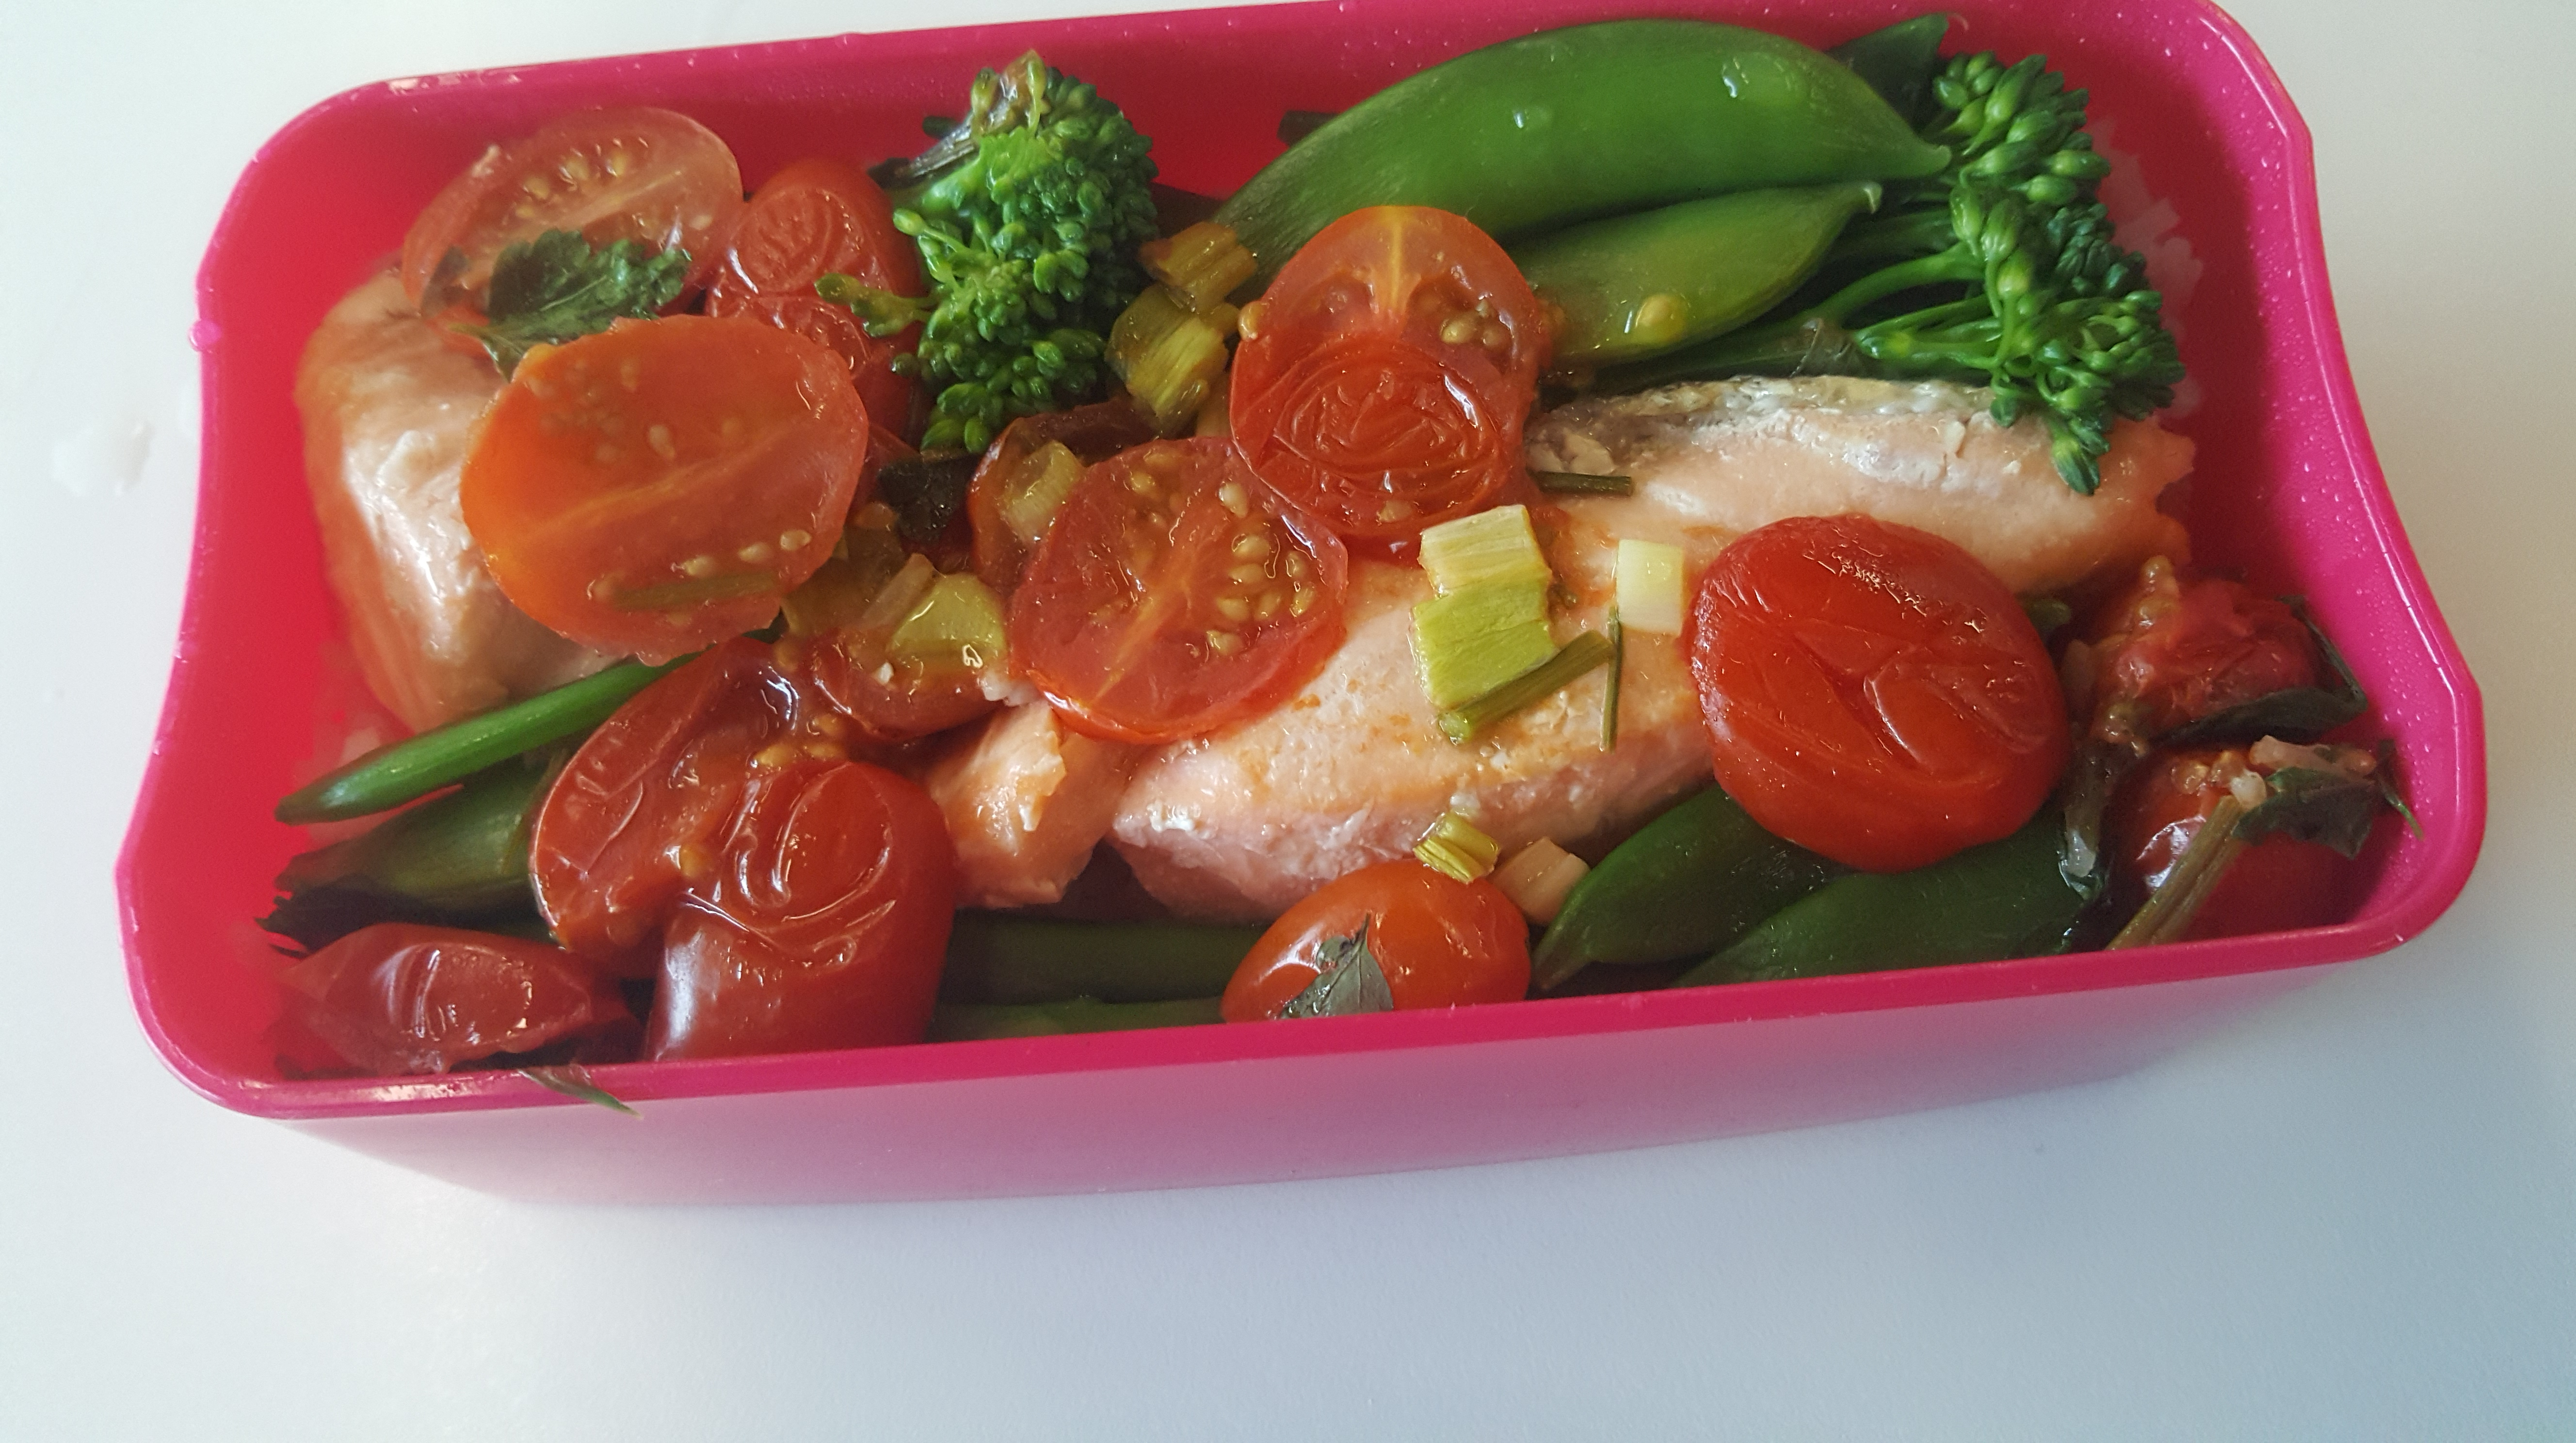 A picture of a lunchbox filled with cooked salmon on bed of rice, with visible sugar snaps, broccoli and cherry tomatoes.